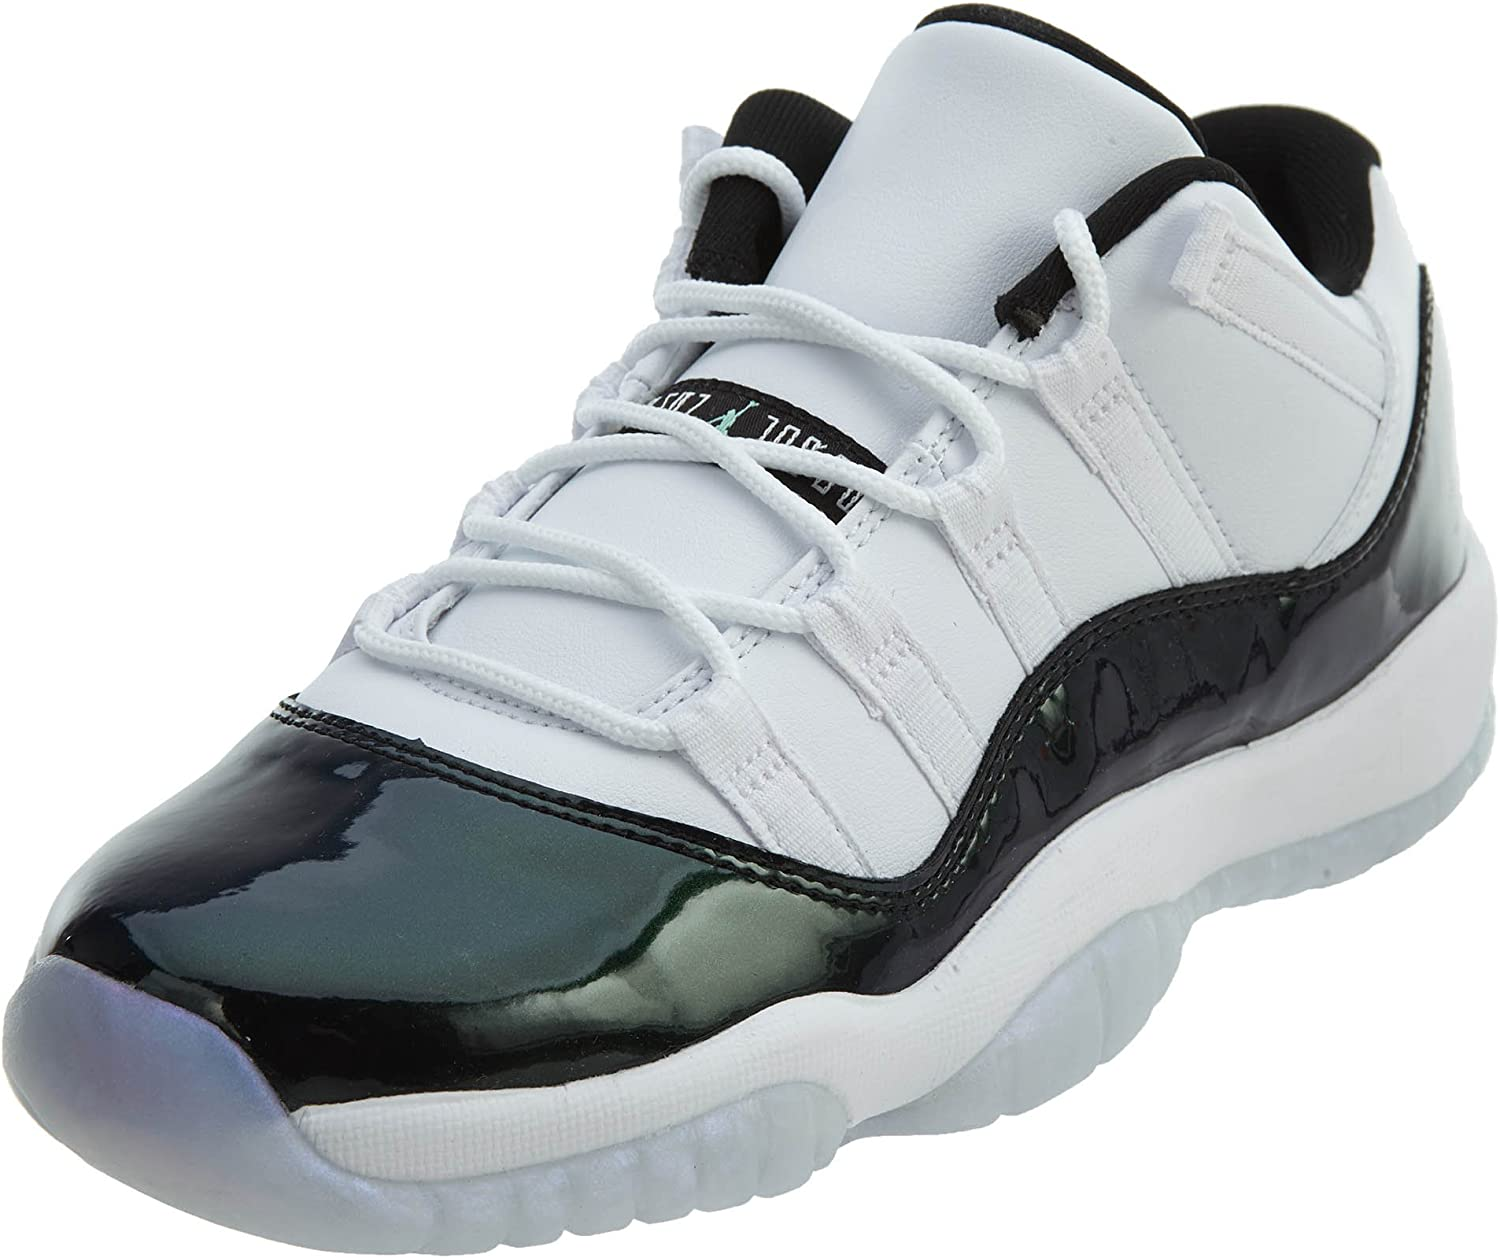 air jordan retro 11 low